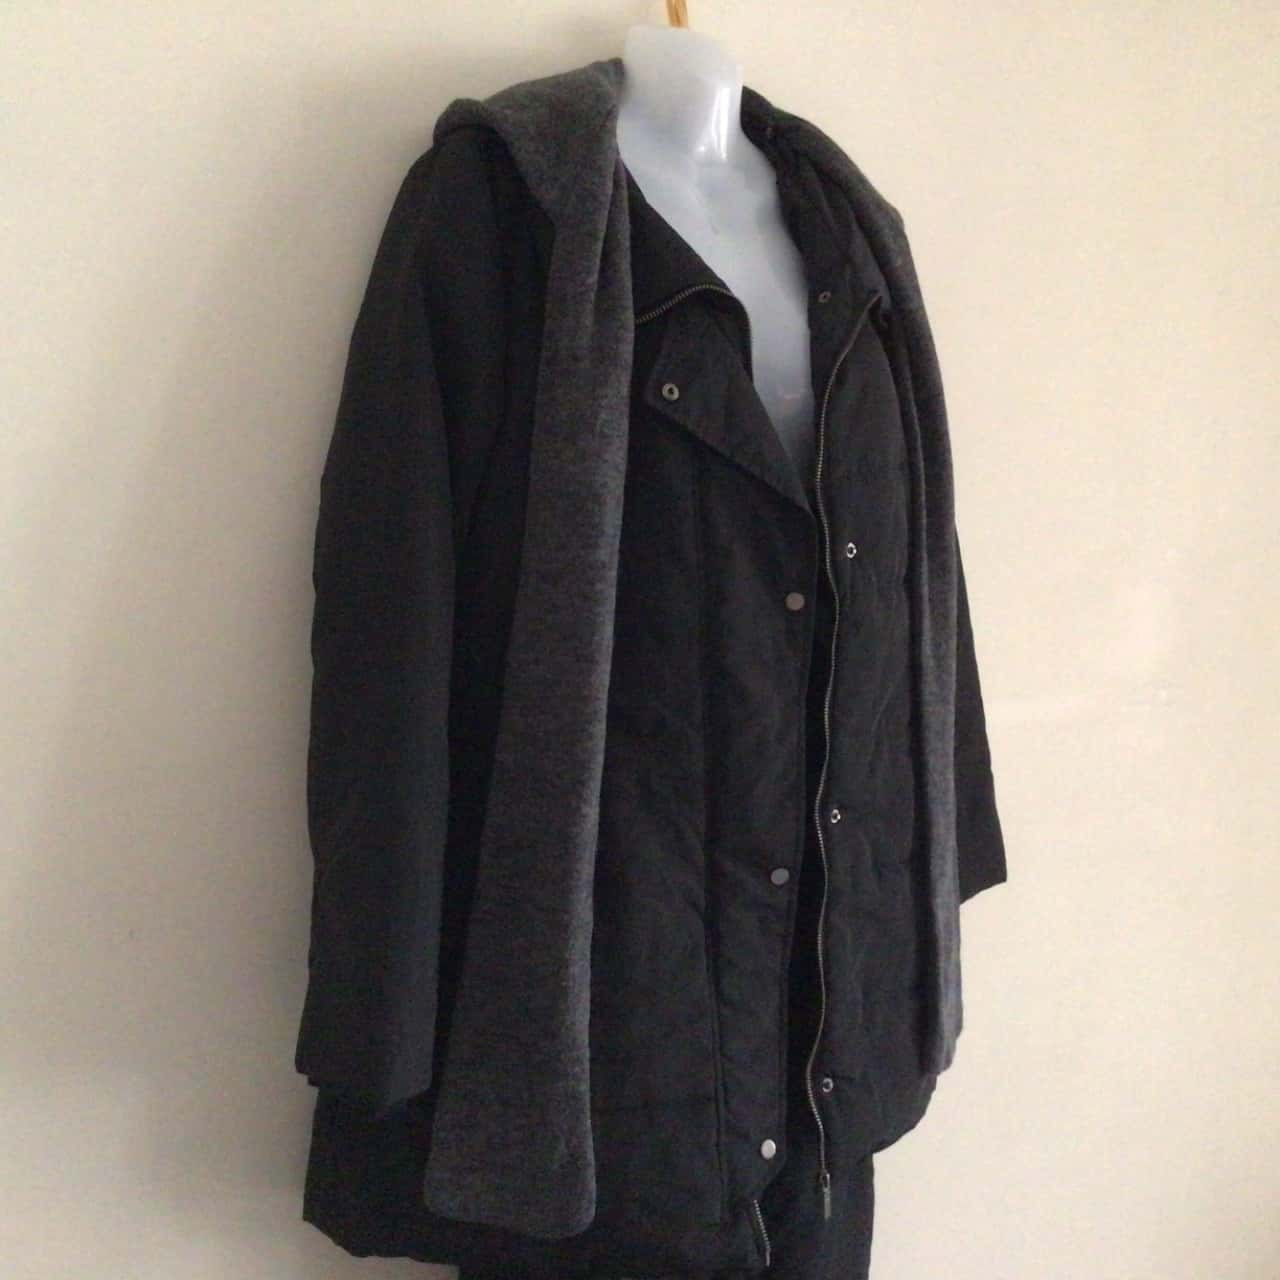 Womens Black Winter Jacket Hooded with Attached Scarf  Size 6/8